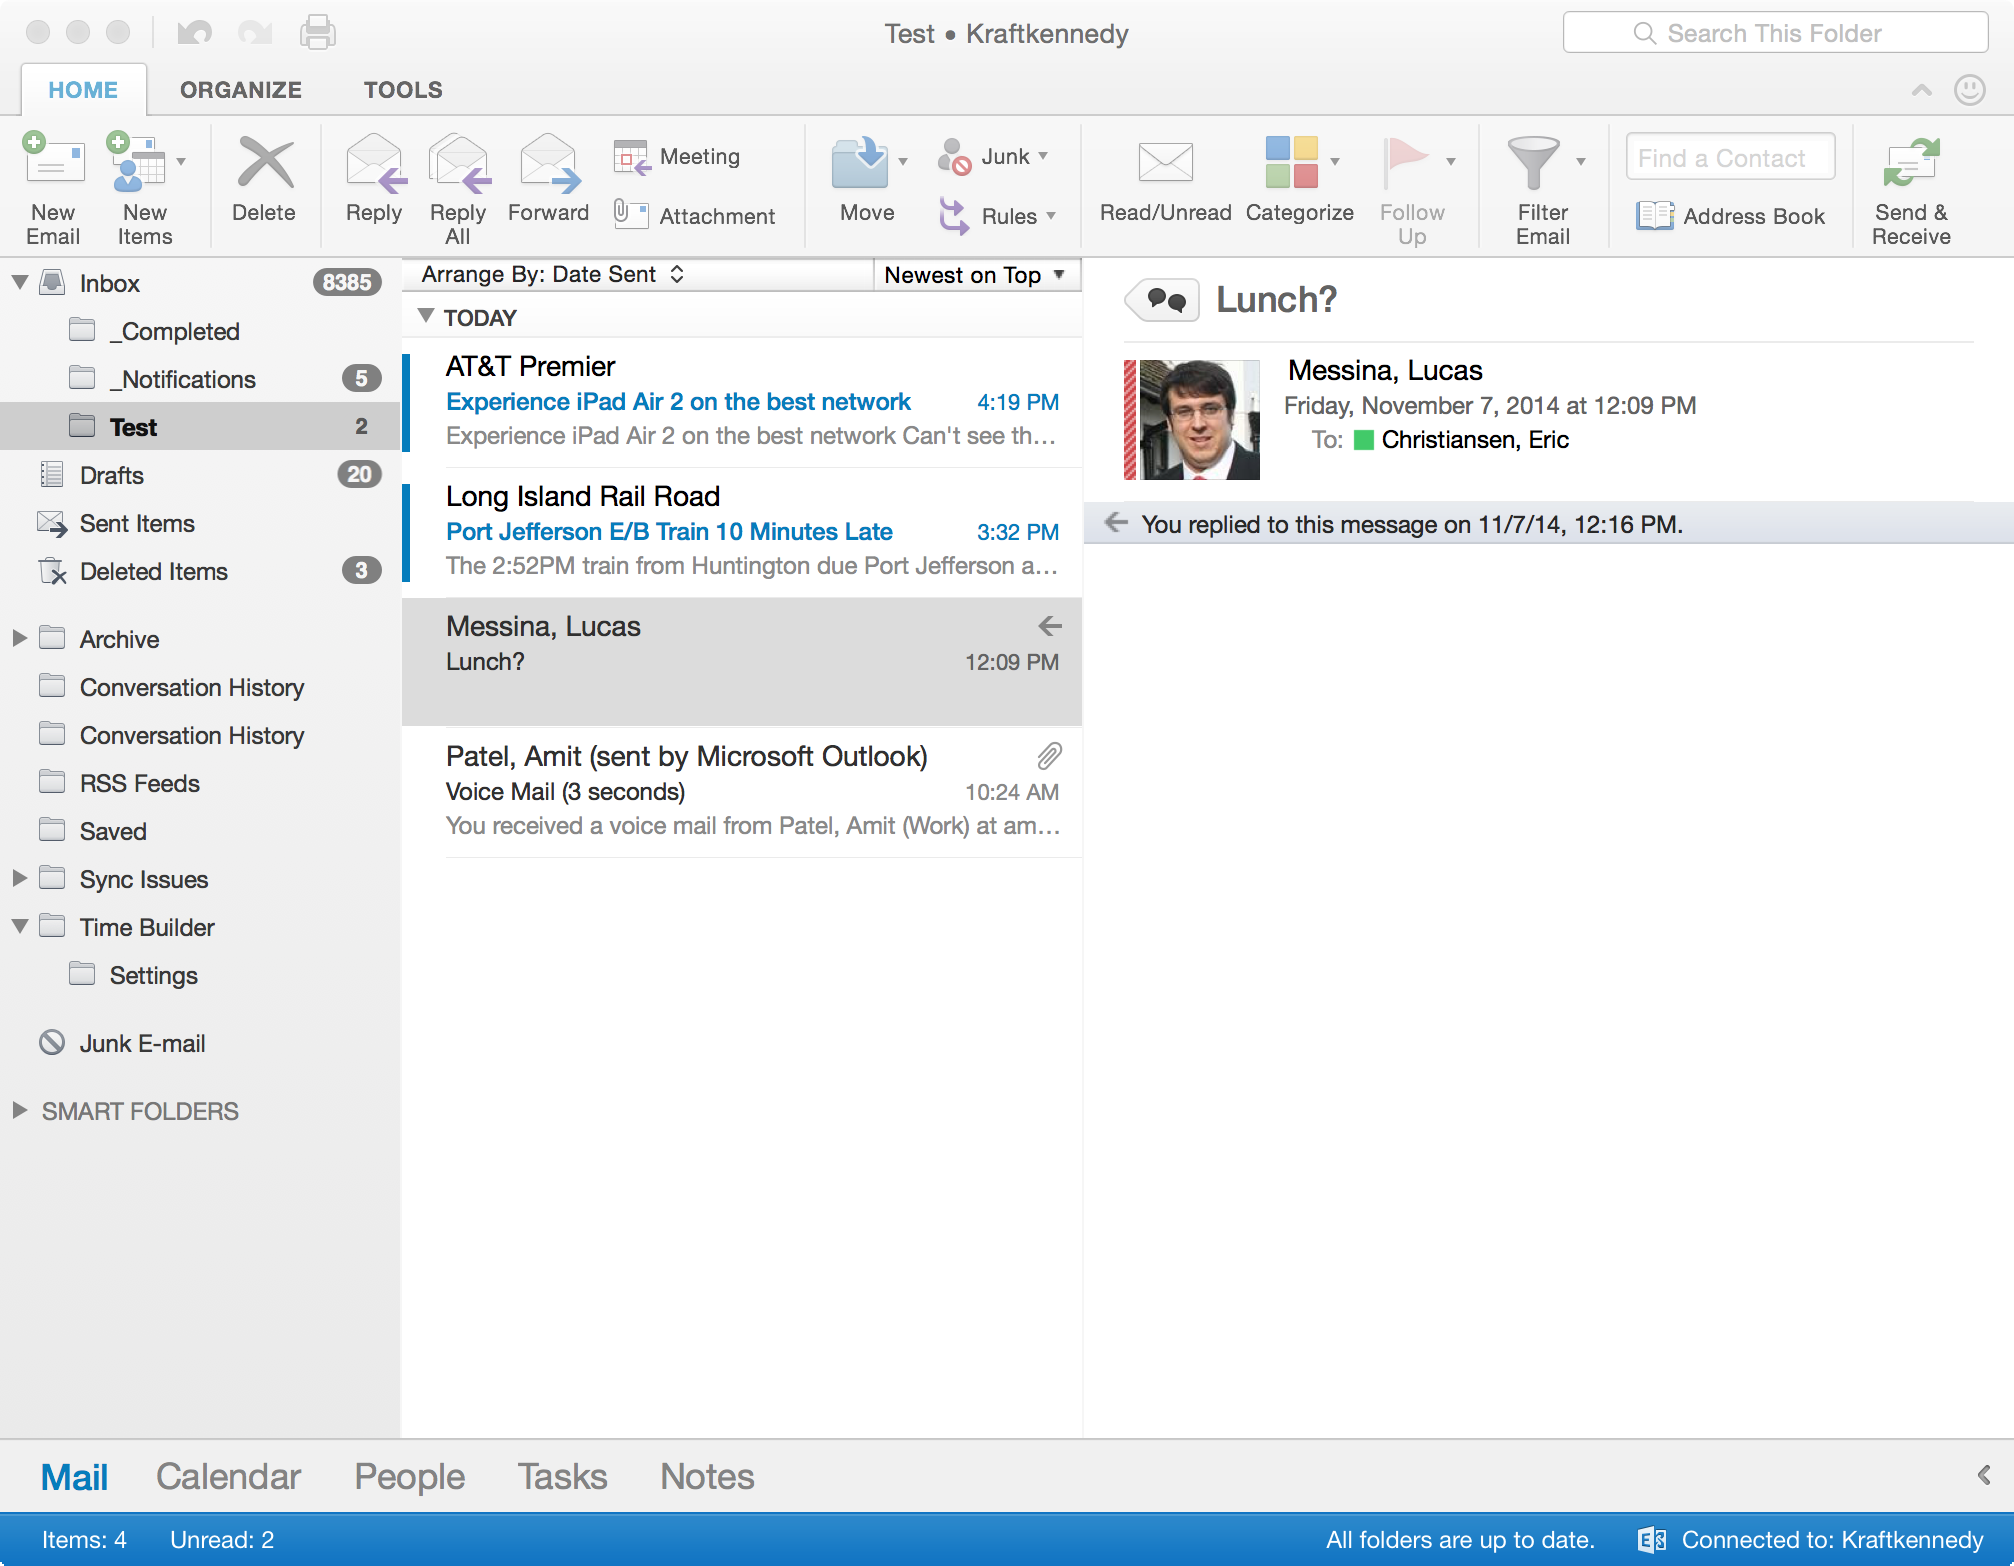 A Review of the New Outlook for Mac for Office 365 - Kraft Kennedy